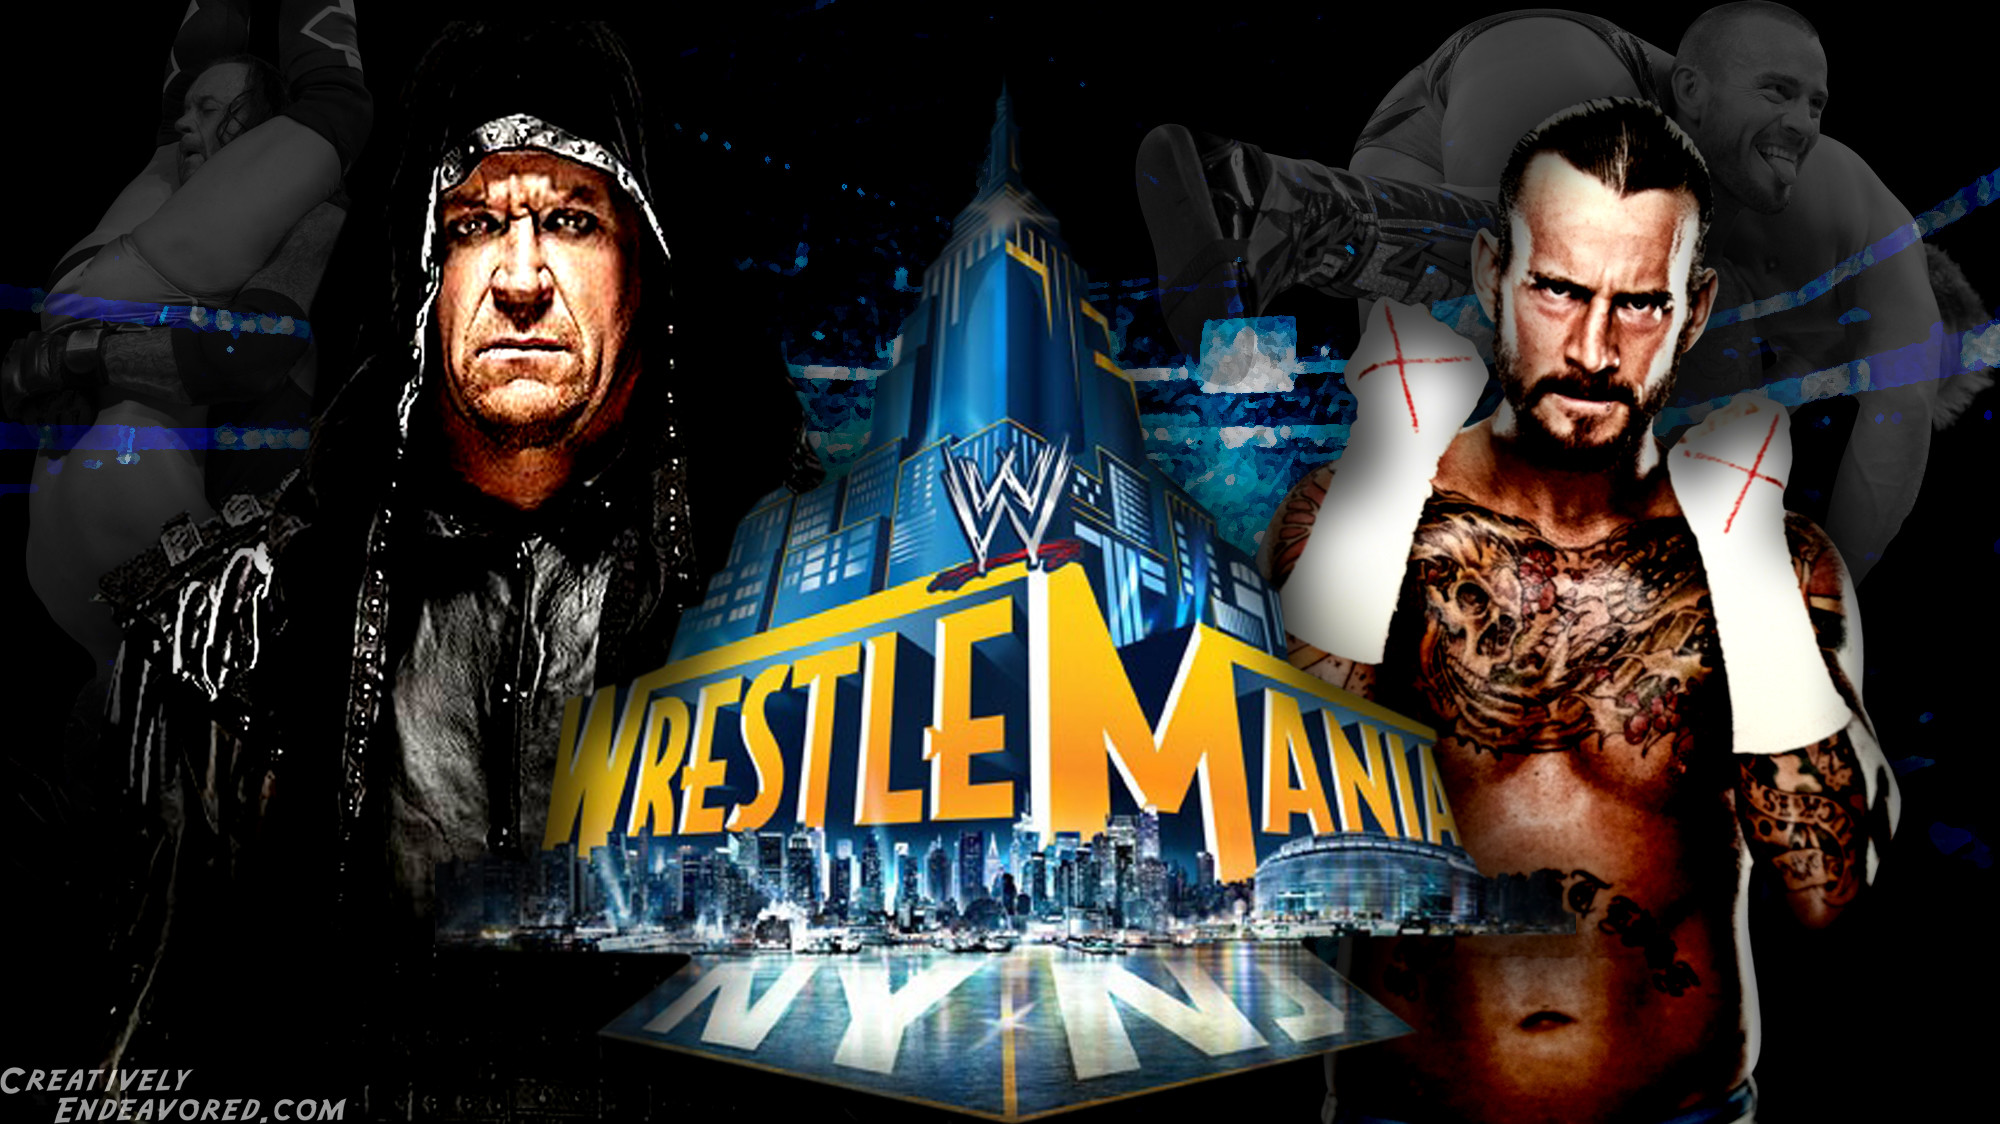 2000x1124 Undertaker vs CM Punk - WrestleMania 29